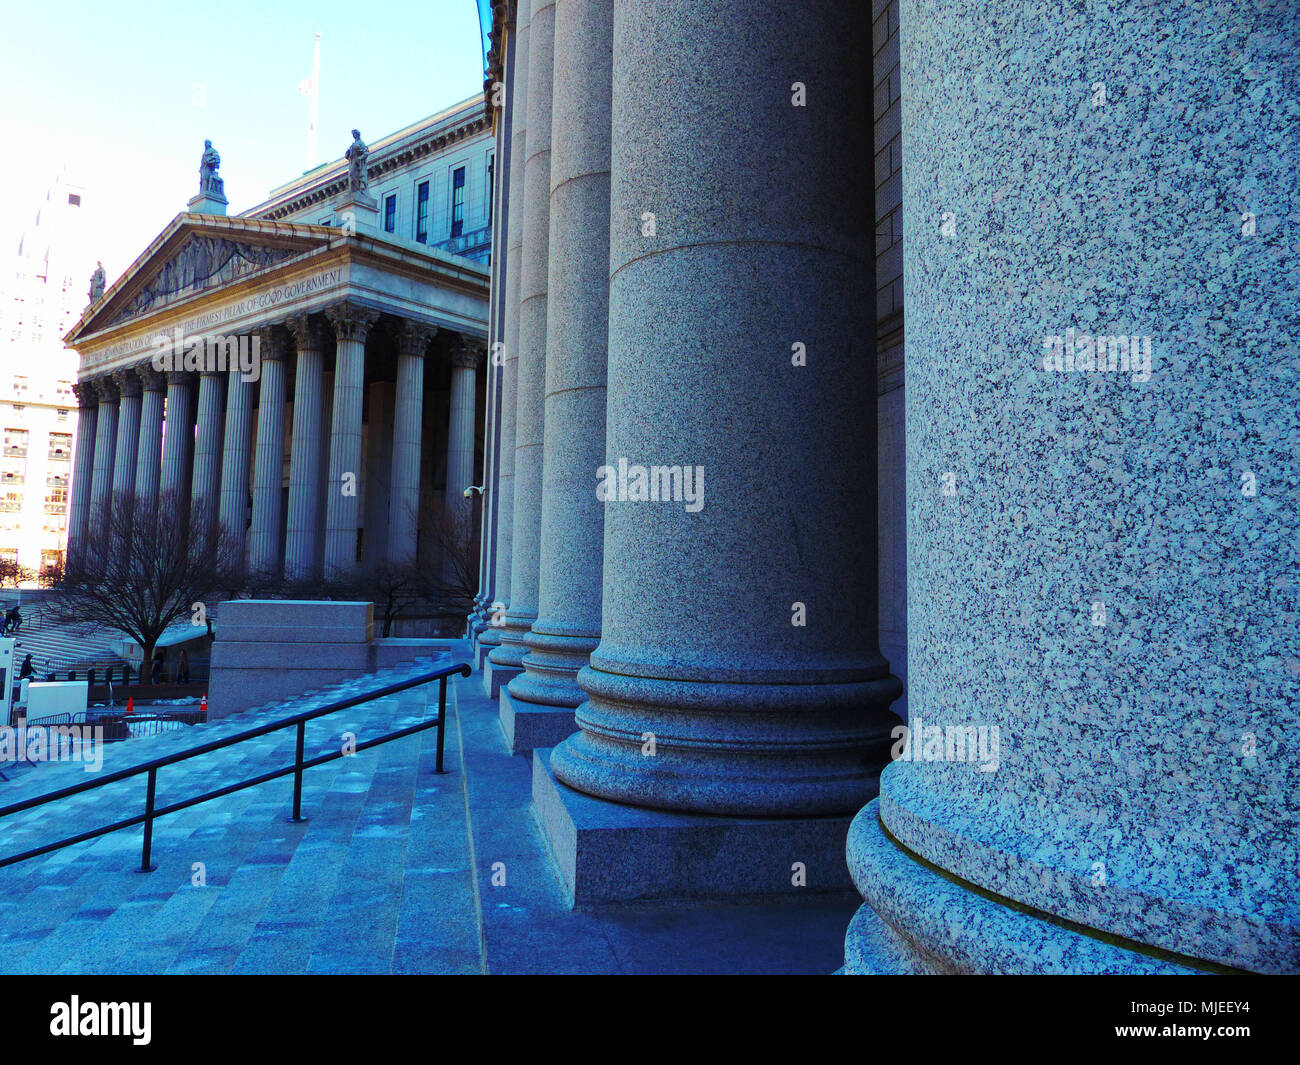 Jury Trial Stock Photos & Jury Trial Stock Images - Alamy